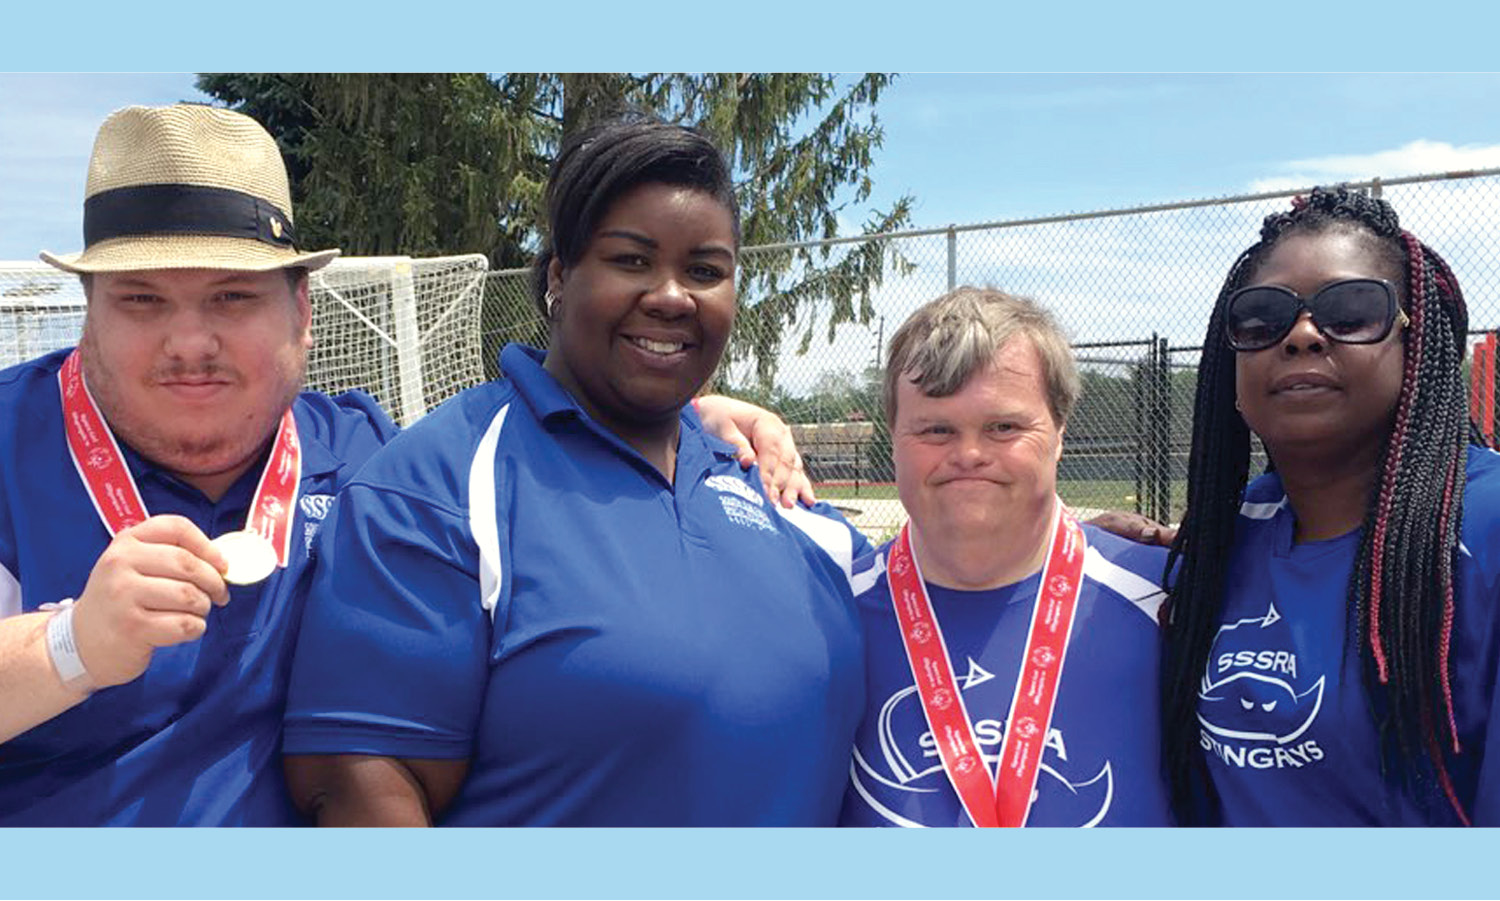 2 Special Olympics athletes and 2 Special Olympics coaches. The athletes are wearing medals.